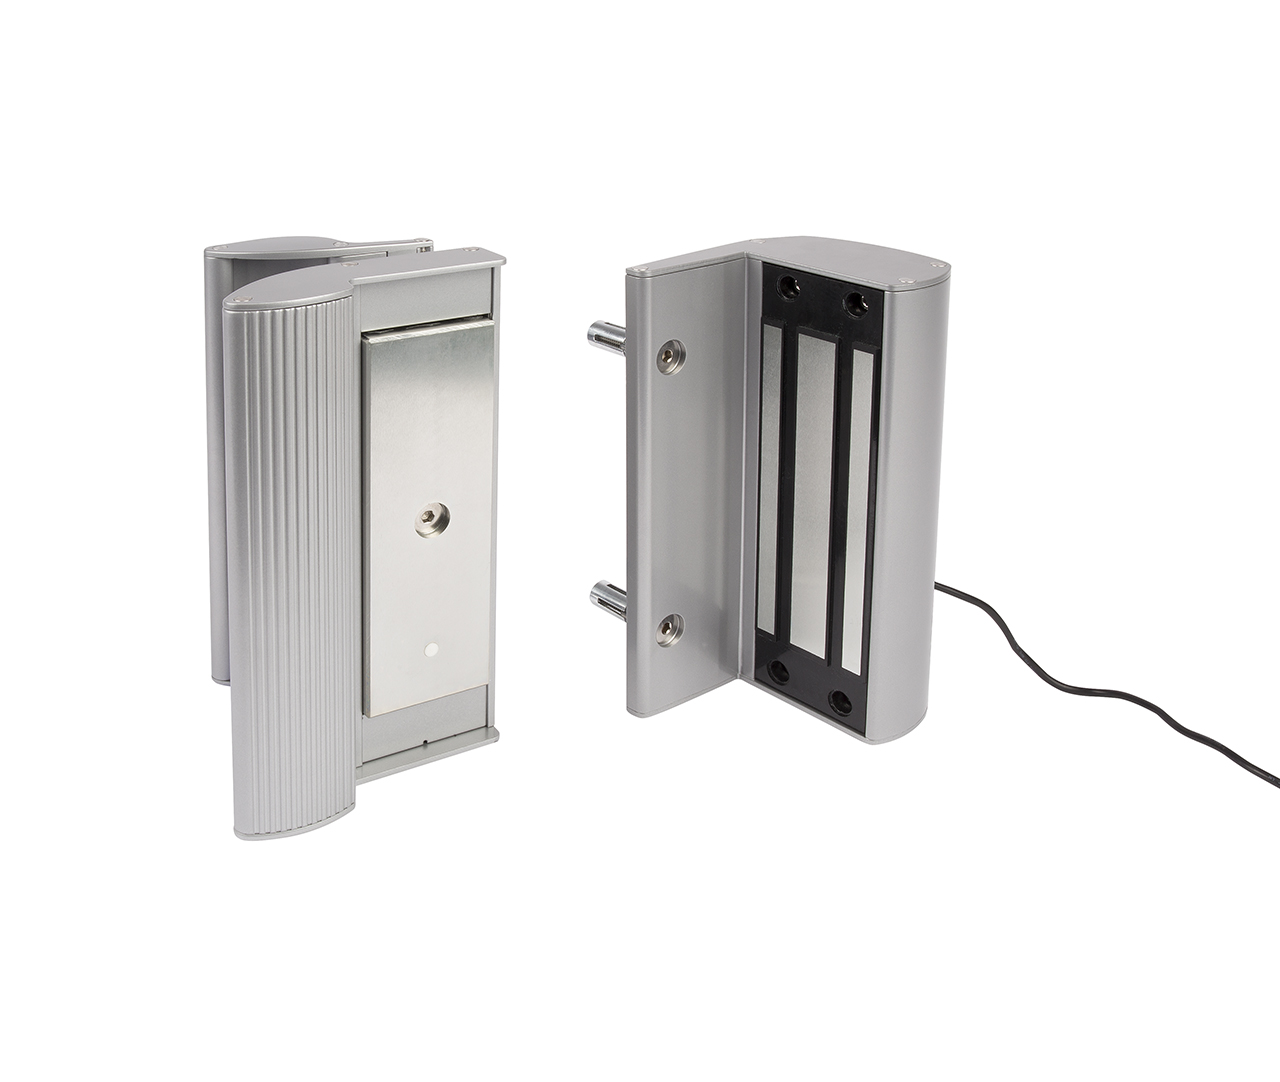 MAG 5000 Magnetic Gate Lock